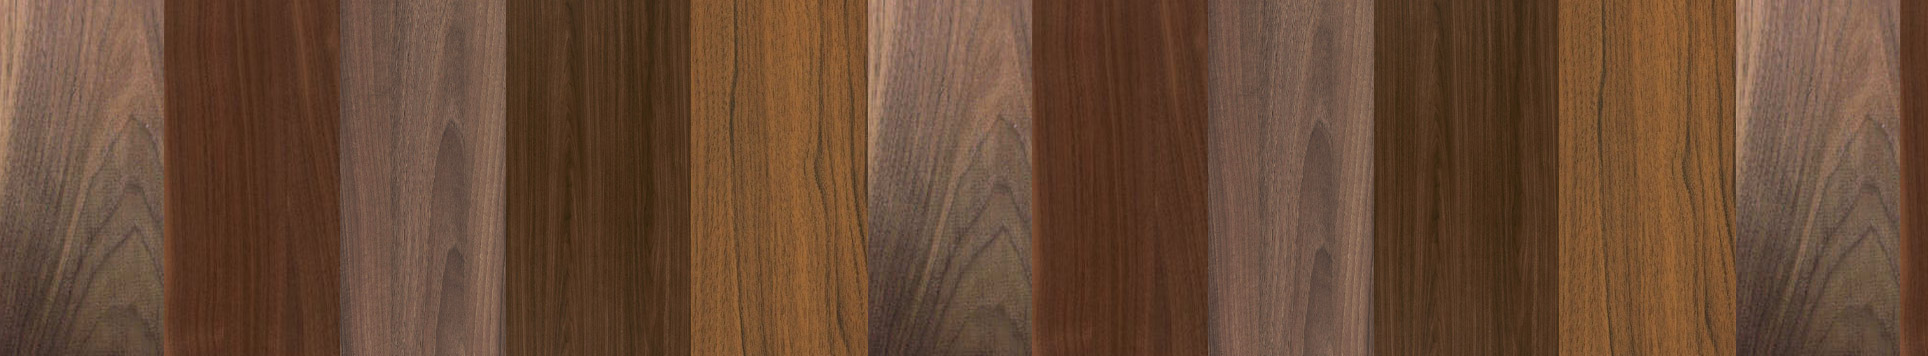 walnut-grain_hu